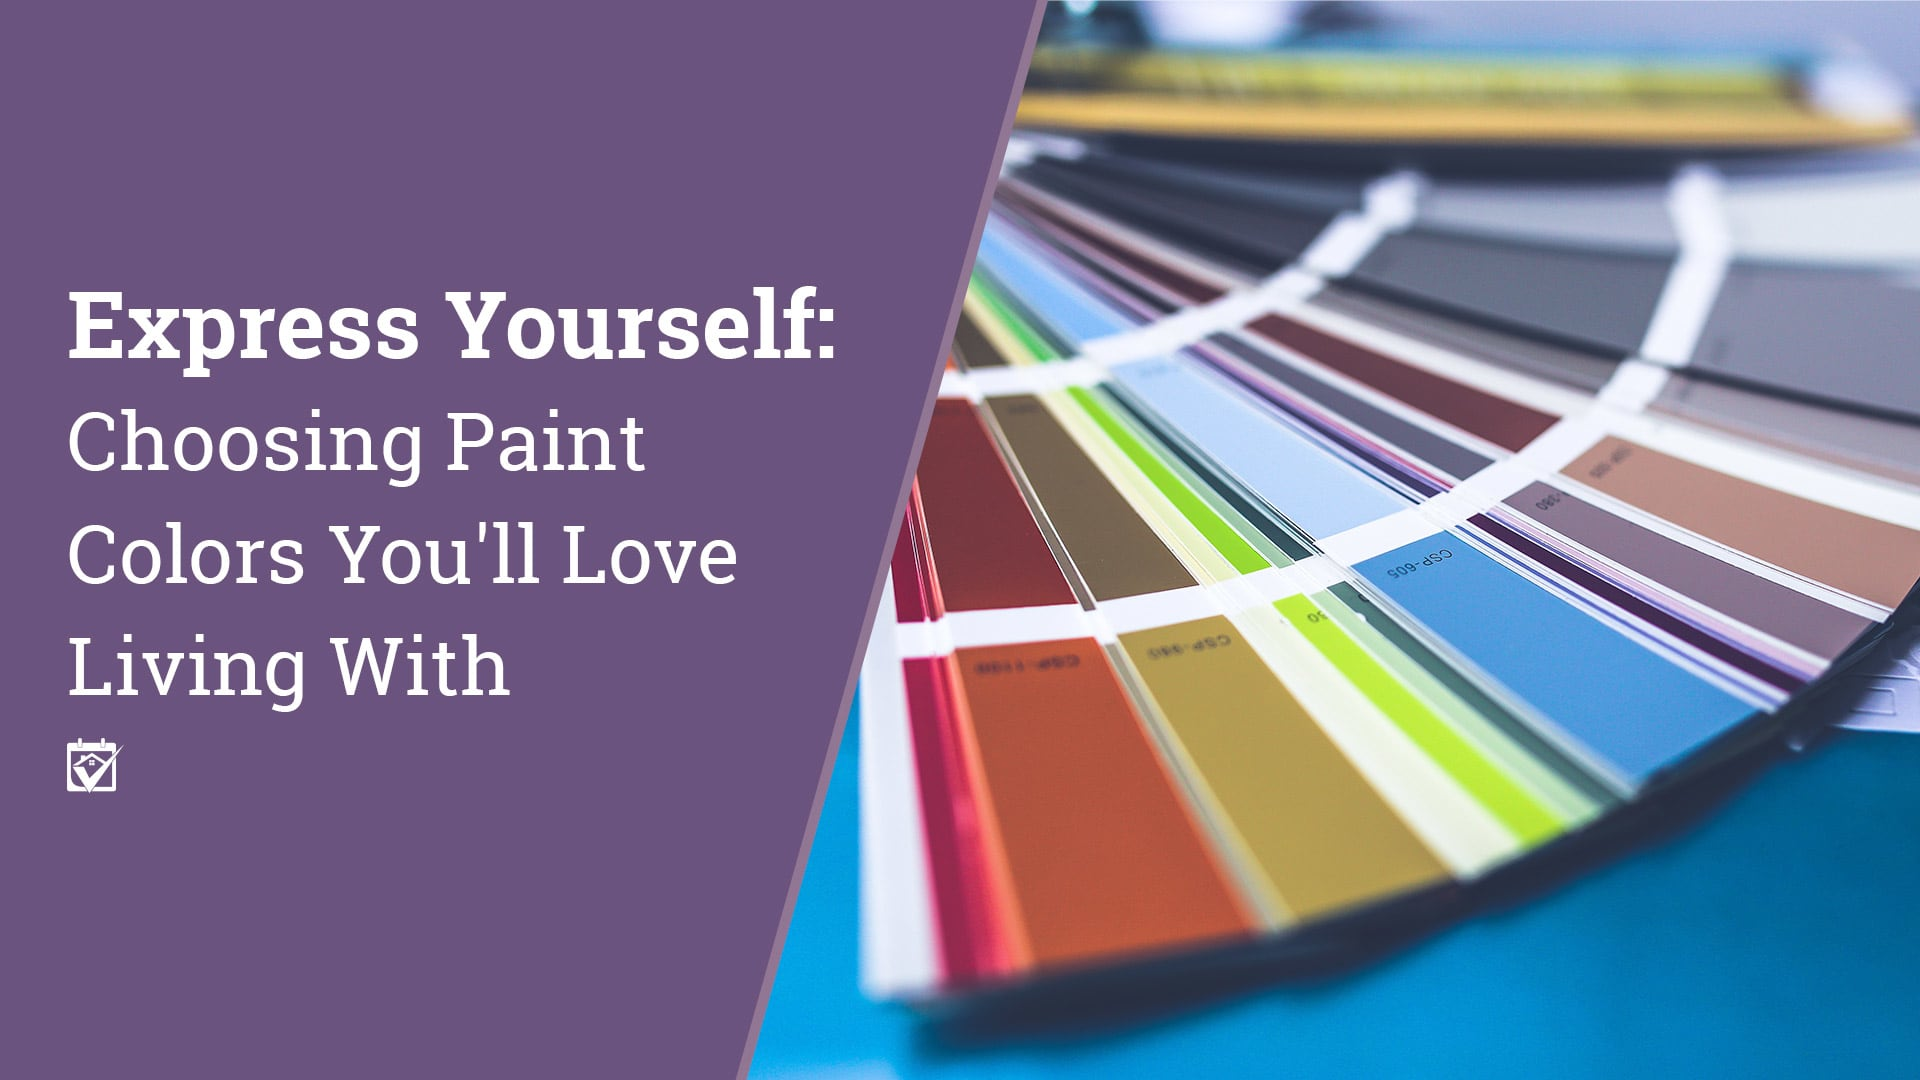 Choosing Paint Colors You'll Love Living With